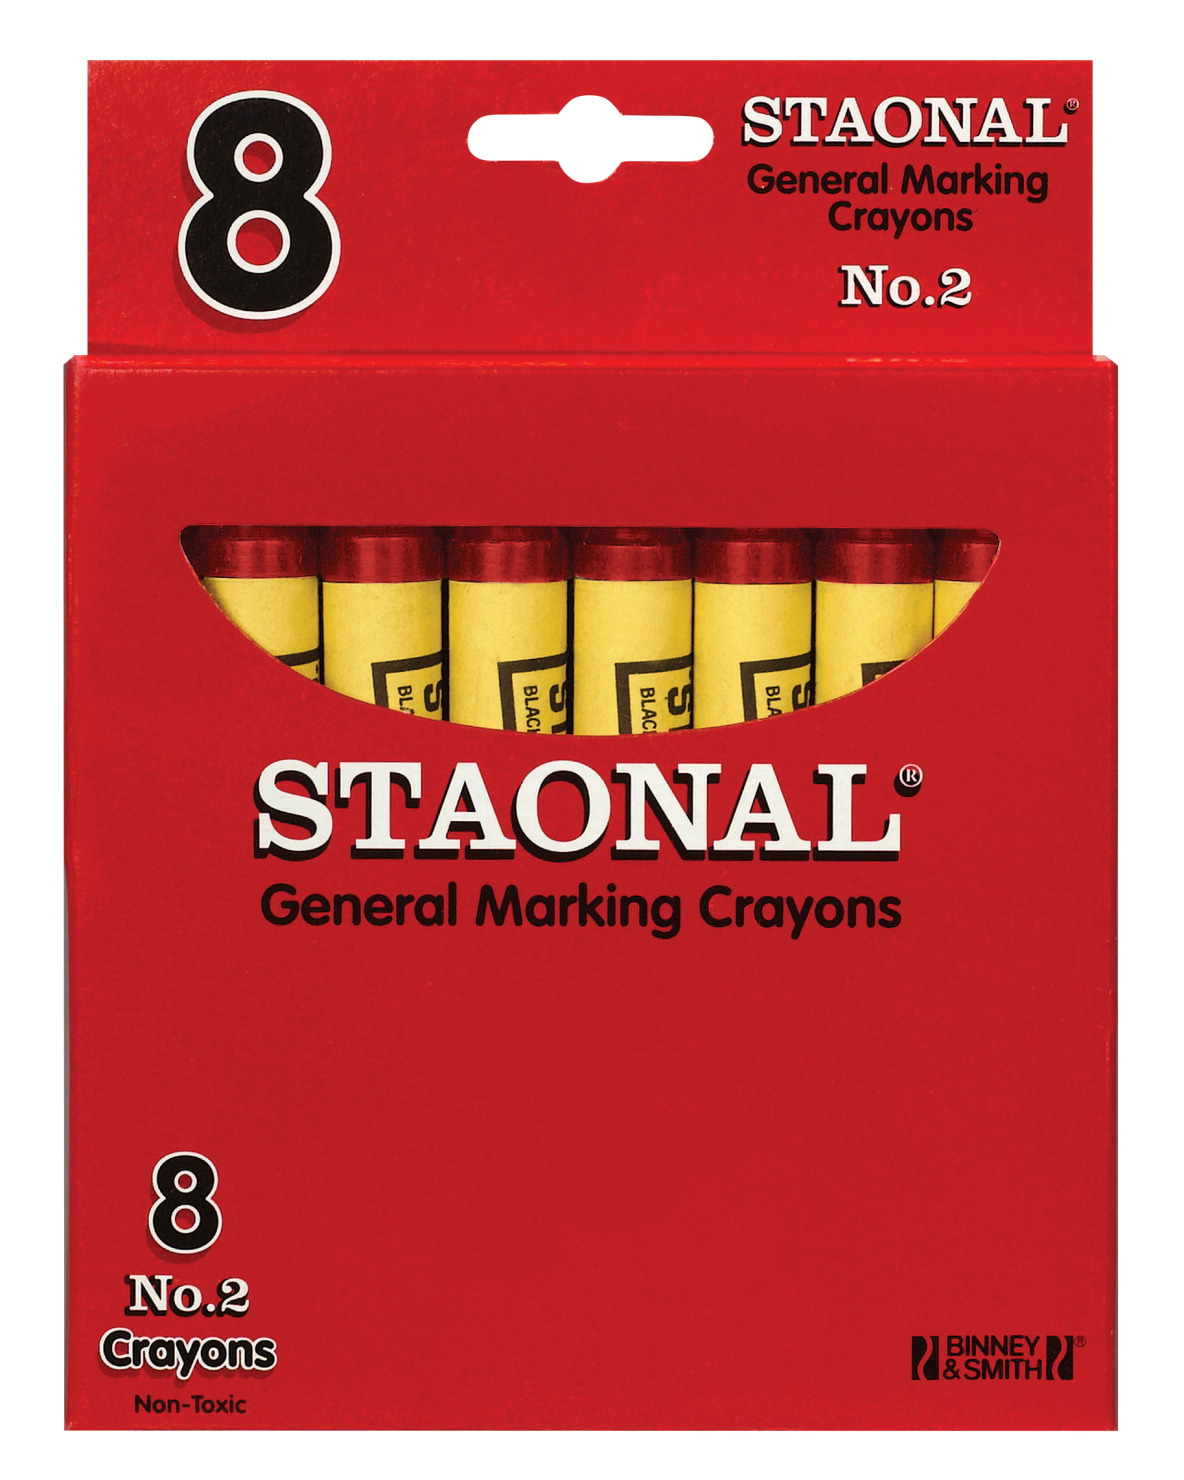 Crayola Staonal General Marking Crayon, Red, Pack of 8